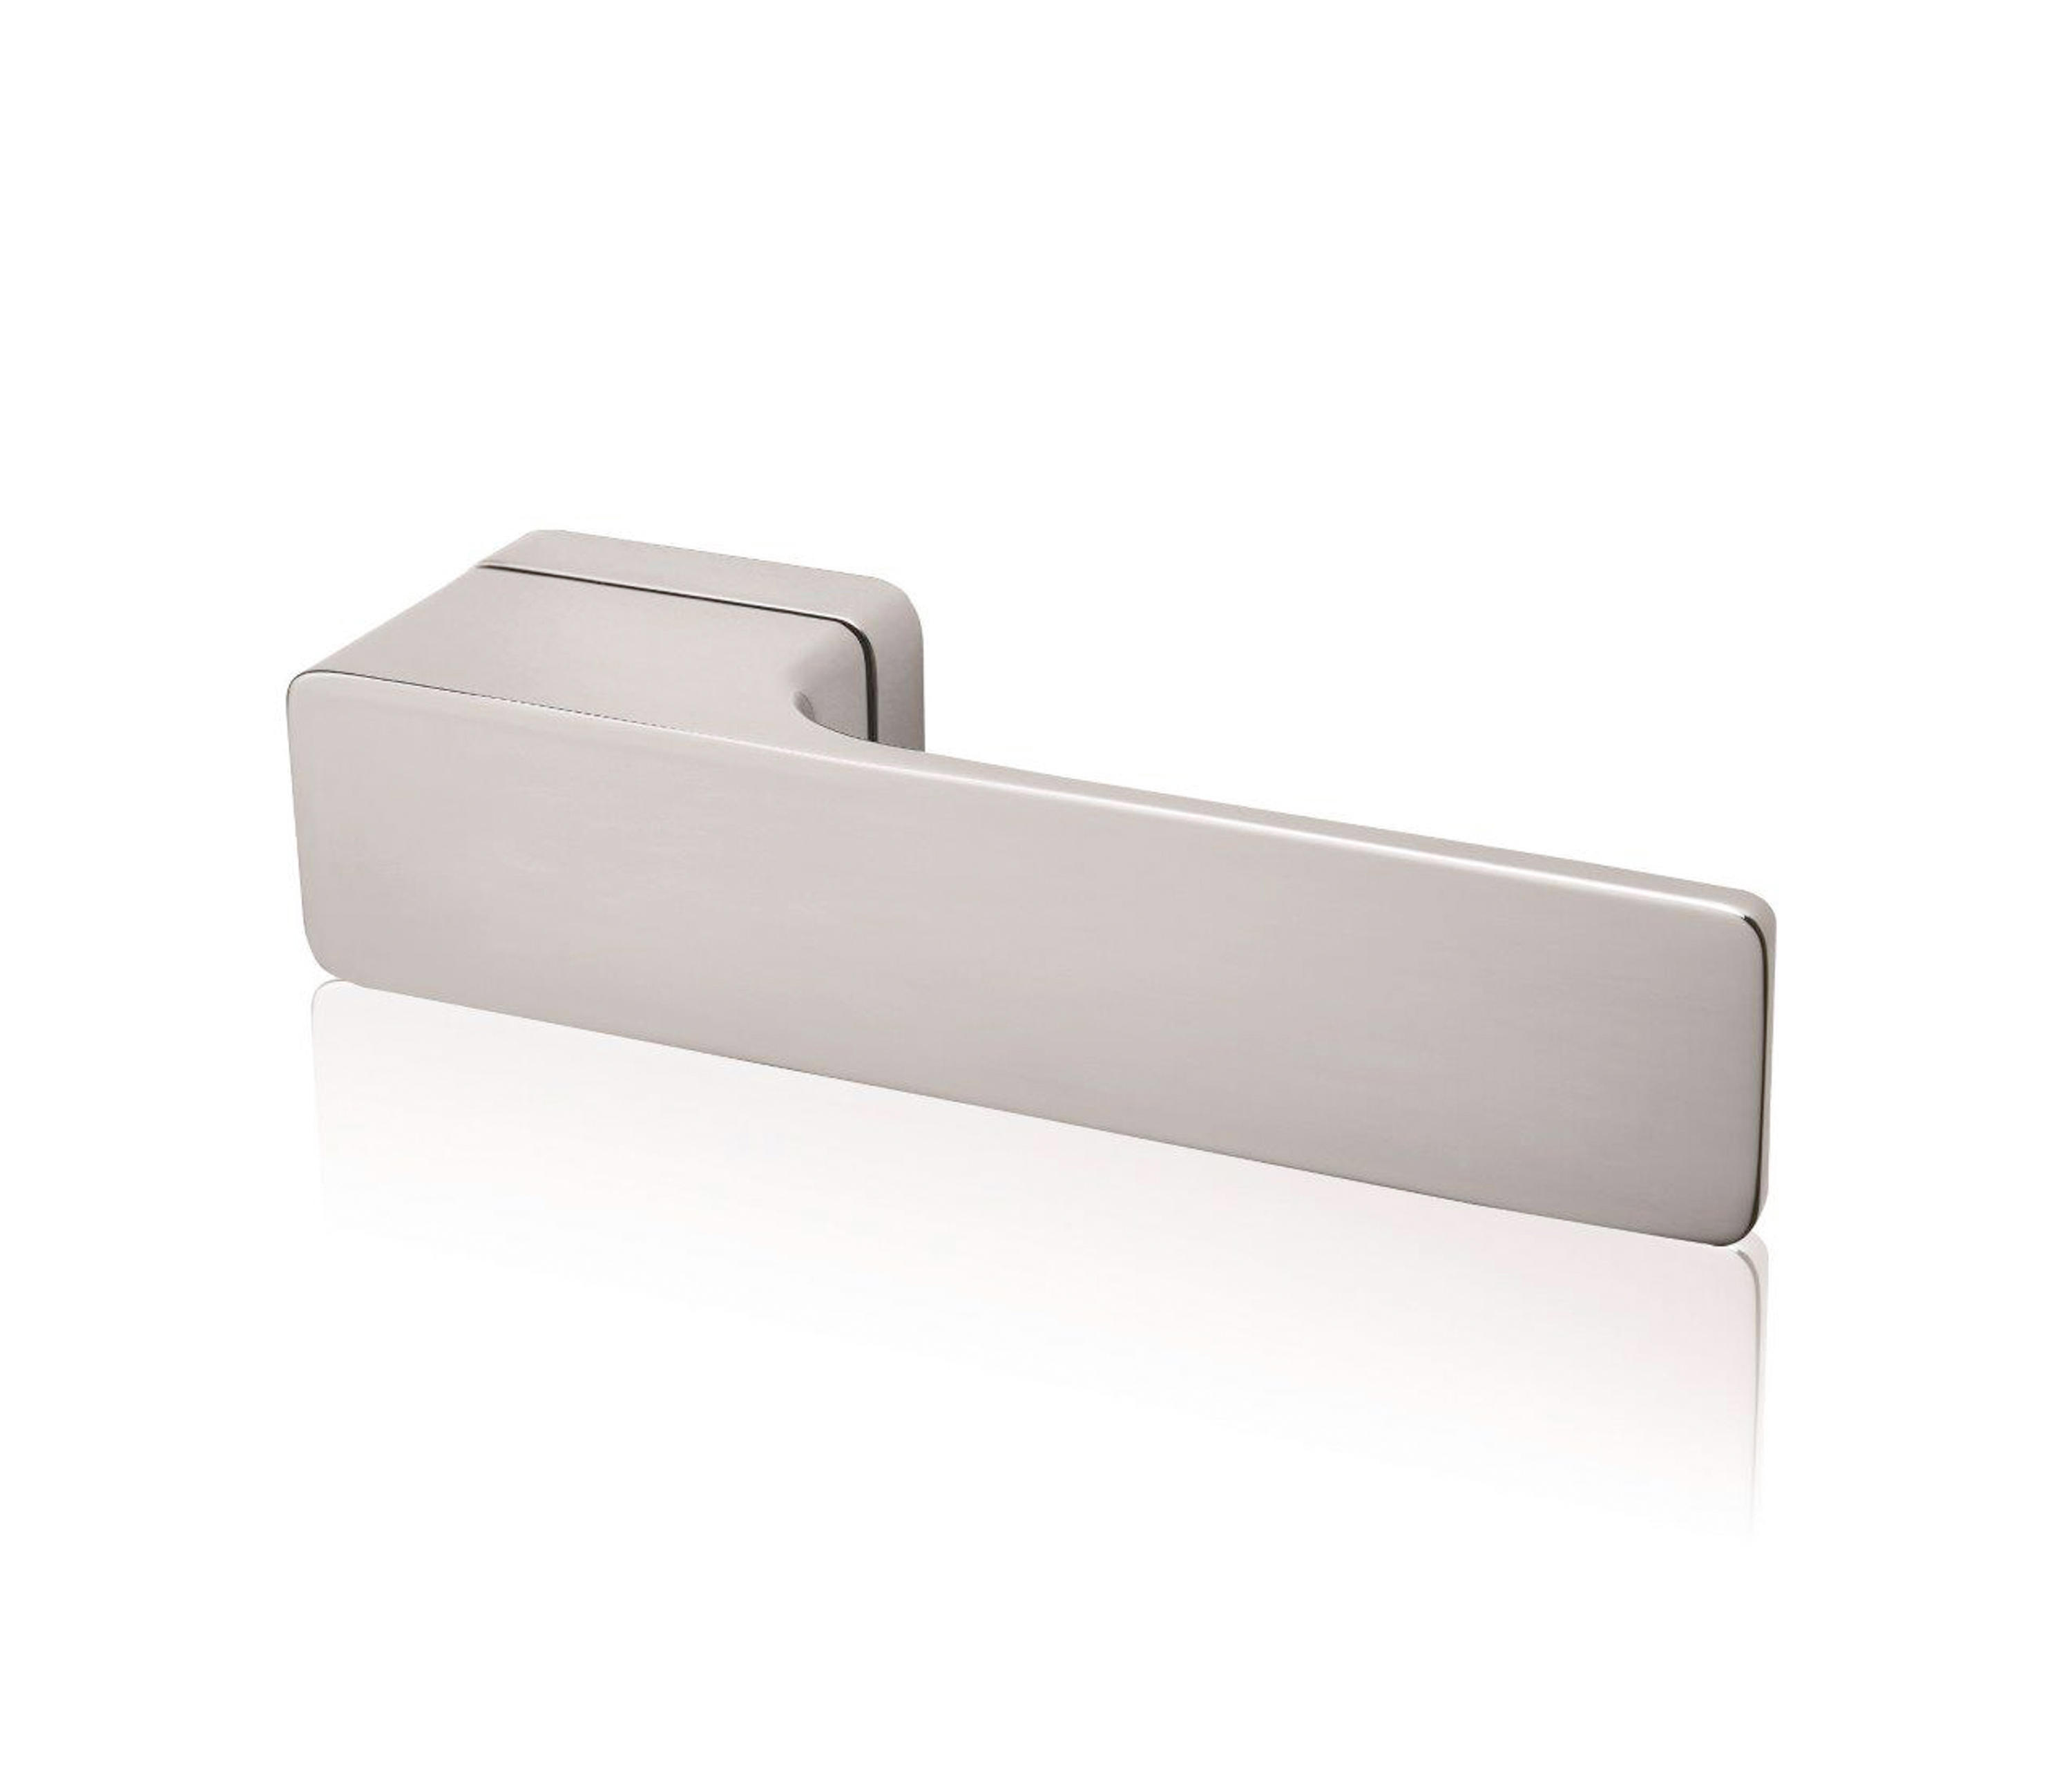 minimal door handle lever handles from m t manufacture. Black Bedroom Furniture Sets. Home Design Ideas